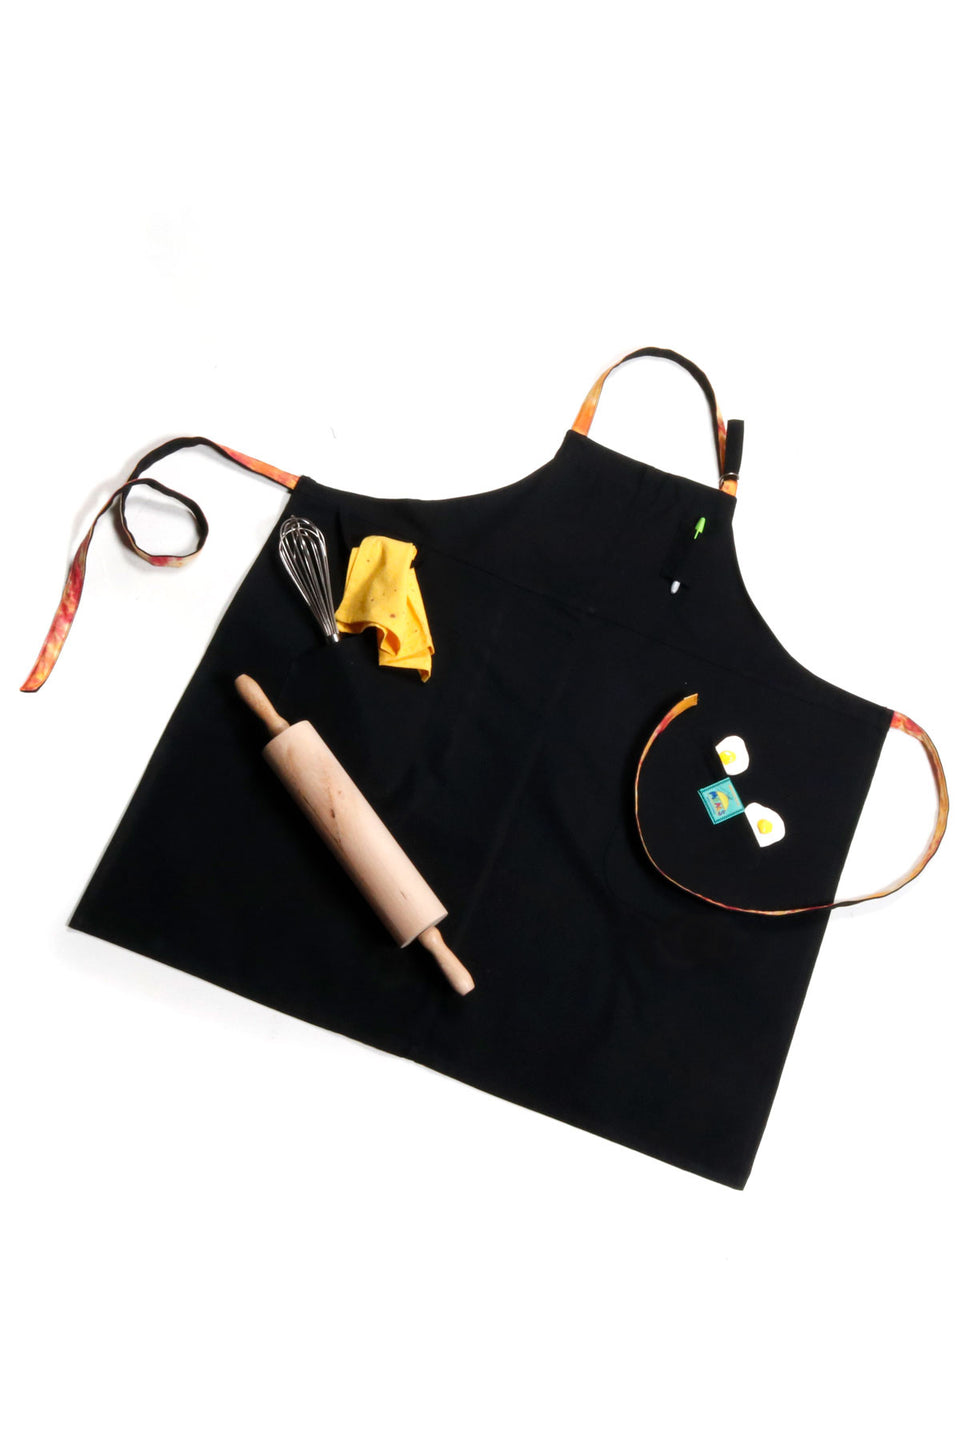 Sweet Chili Apron